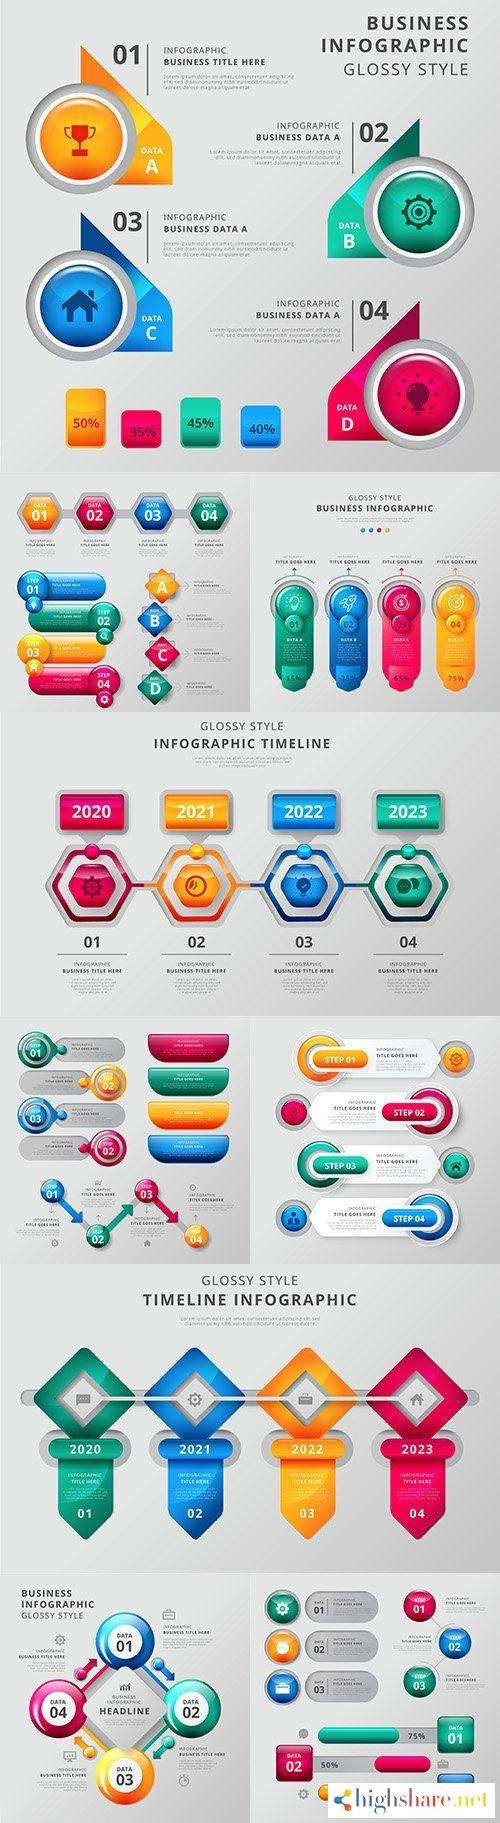 business infographics options elements collection 150 5f41d74ecb783 - Business infographics options elements collection 150